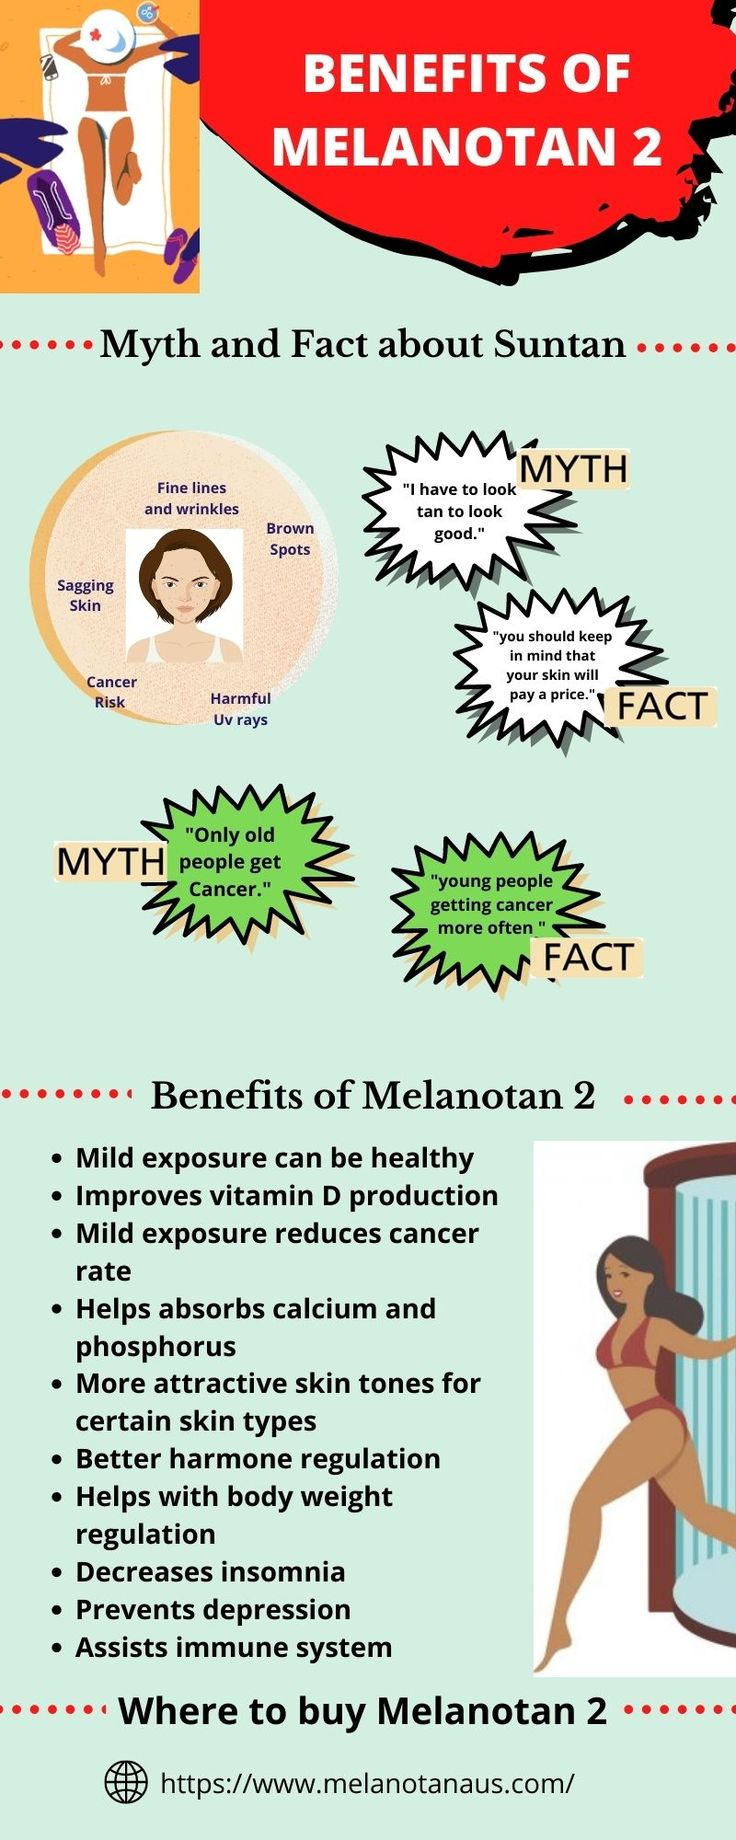 Benefits of Melanotan 2